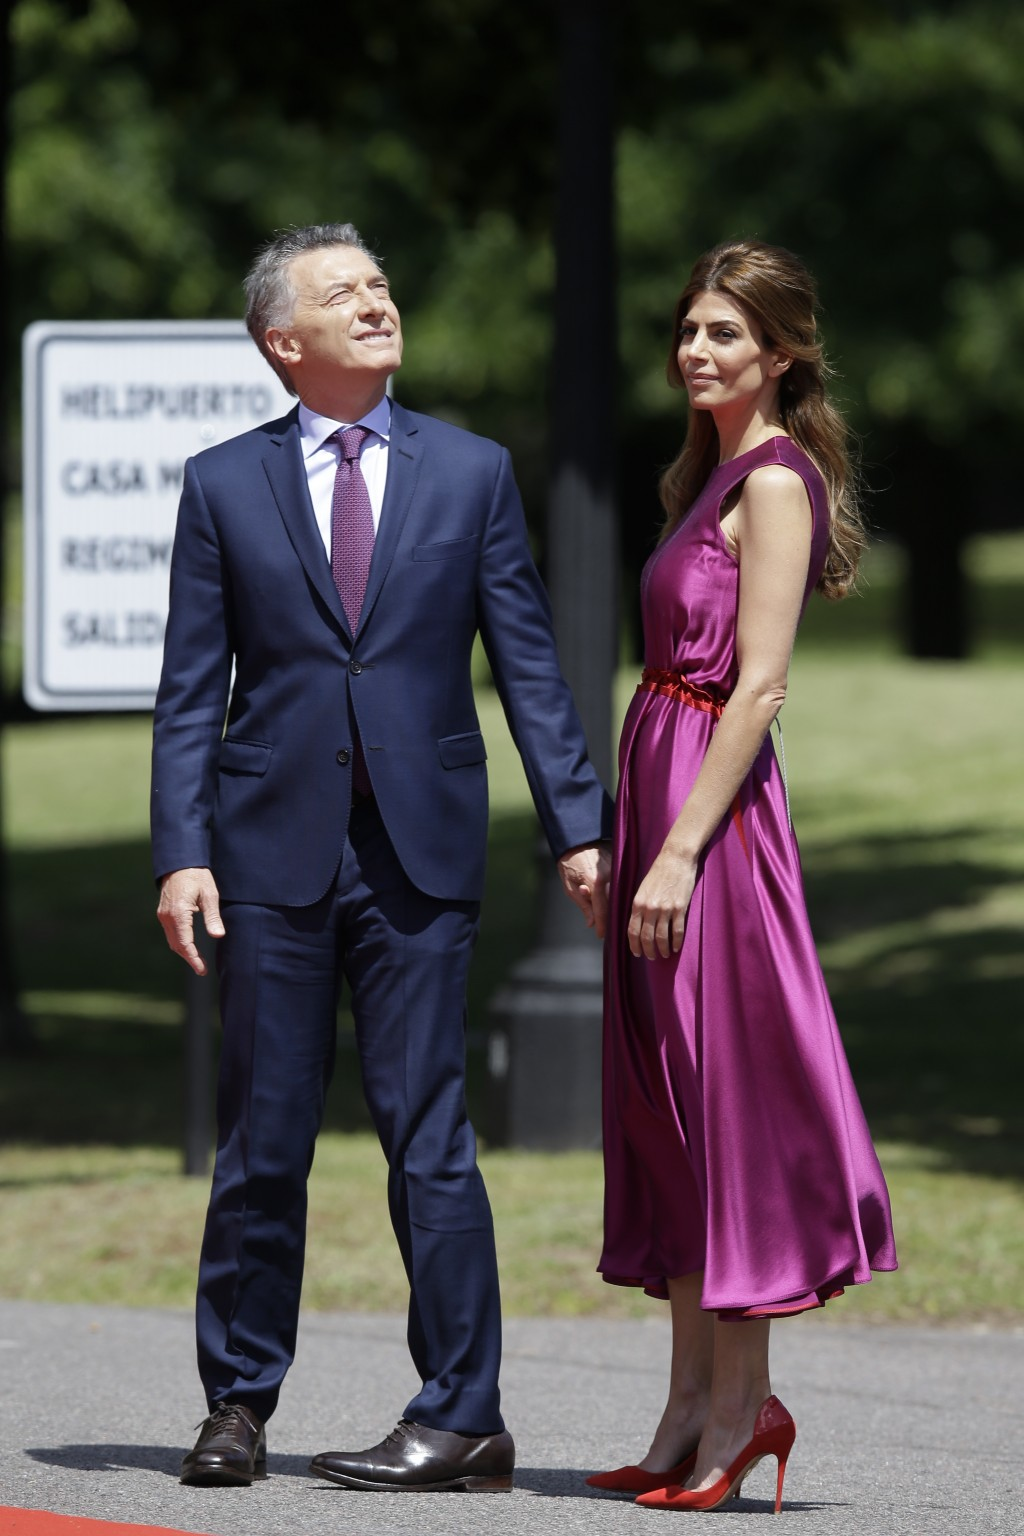 Argentina's President Mauricio Macri, left, and first lady Juliana Awada wait for the arrival of China's President Xi Jinping at presidential residenc